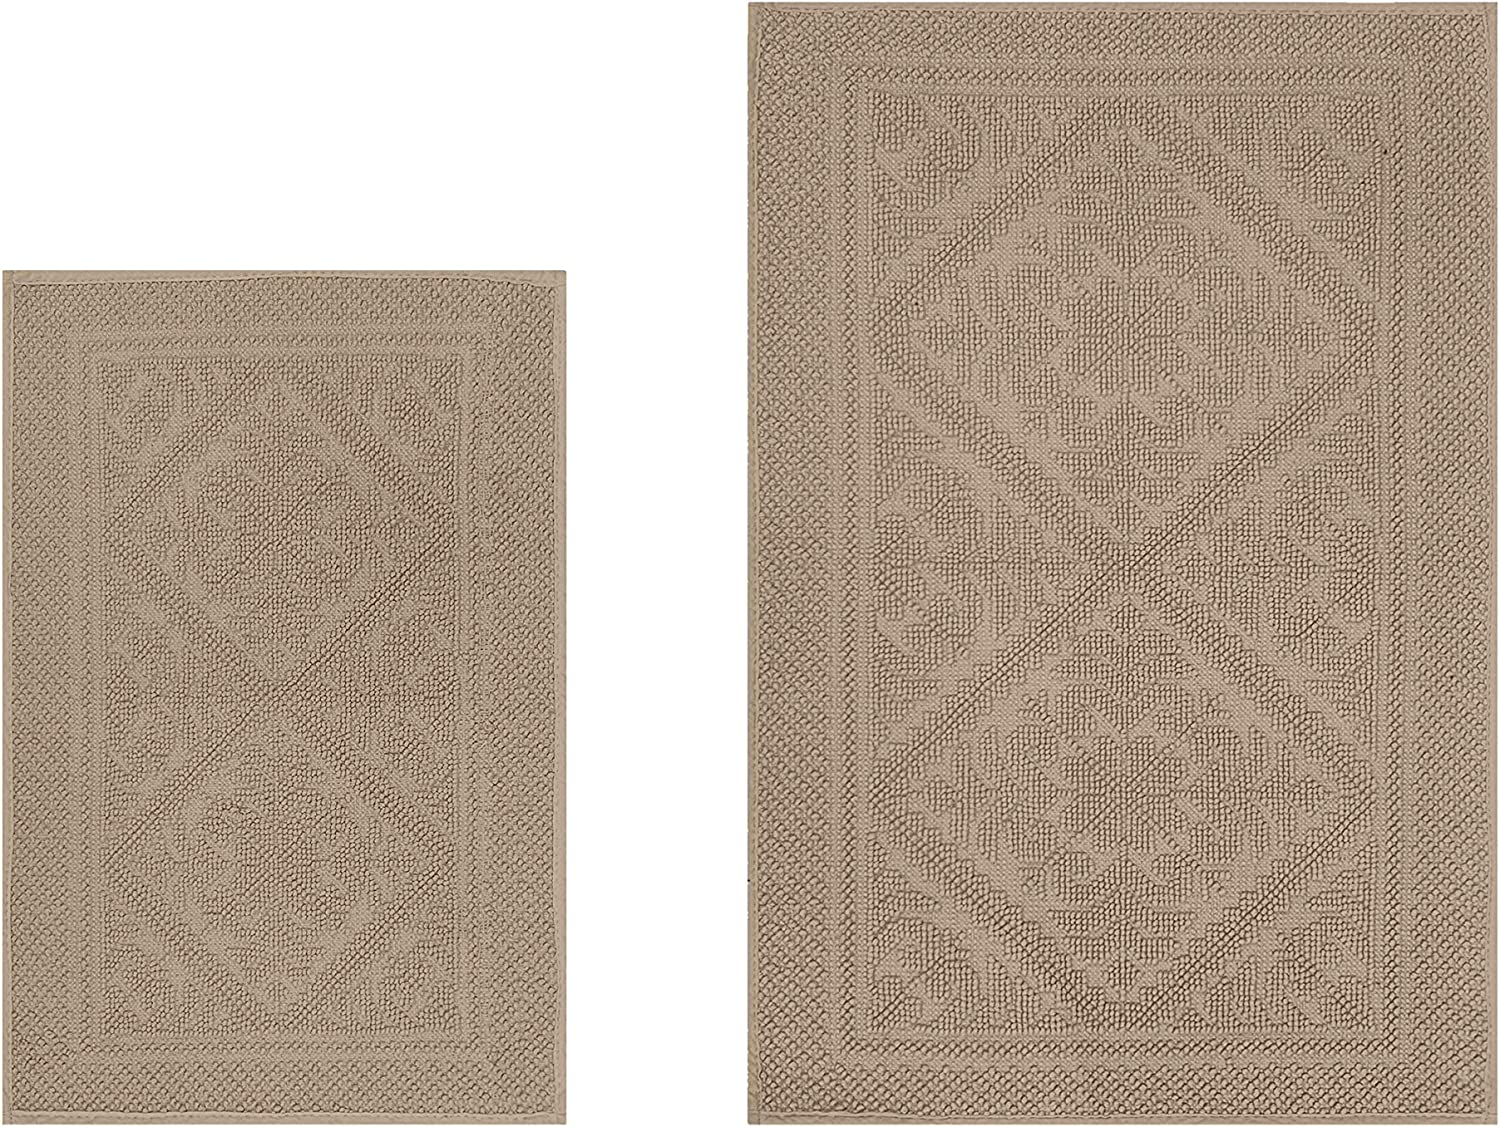 Better Trends Jaquard Collection Is Ultra Soft Plush And Absorbent Tufted Bath Mat Rug Grey 100 Cotton In Vibrant Colors 2 Piece Set Beige Home Kitchen Amazon Com